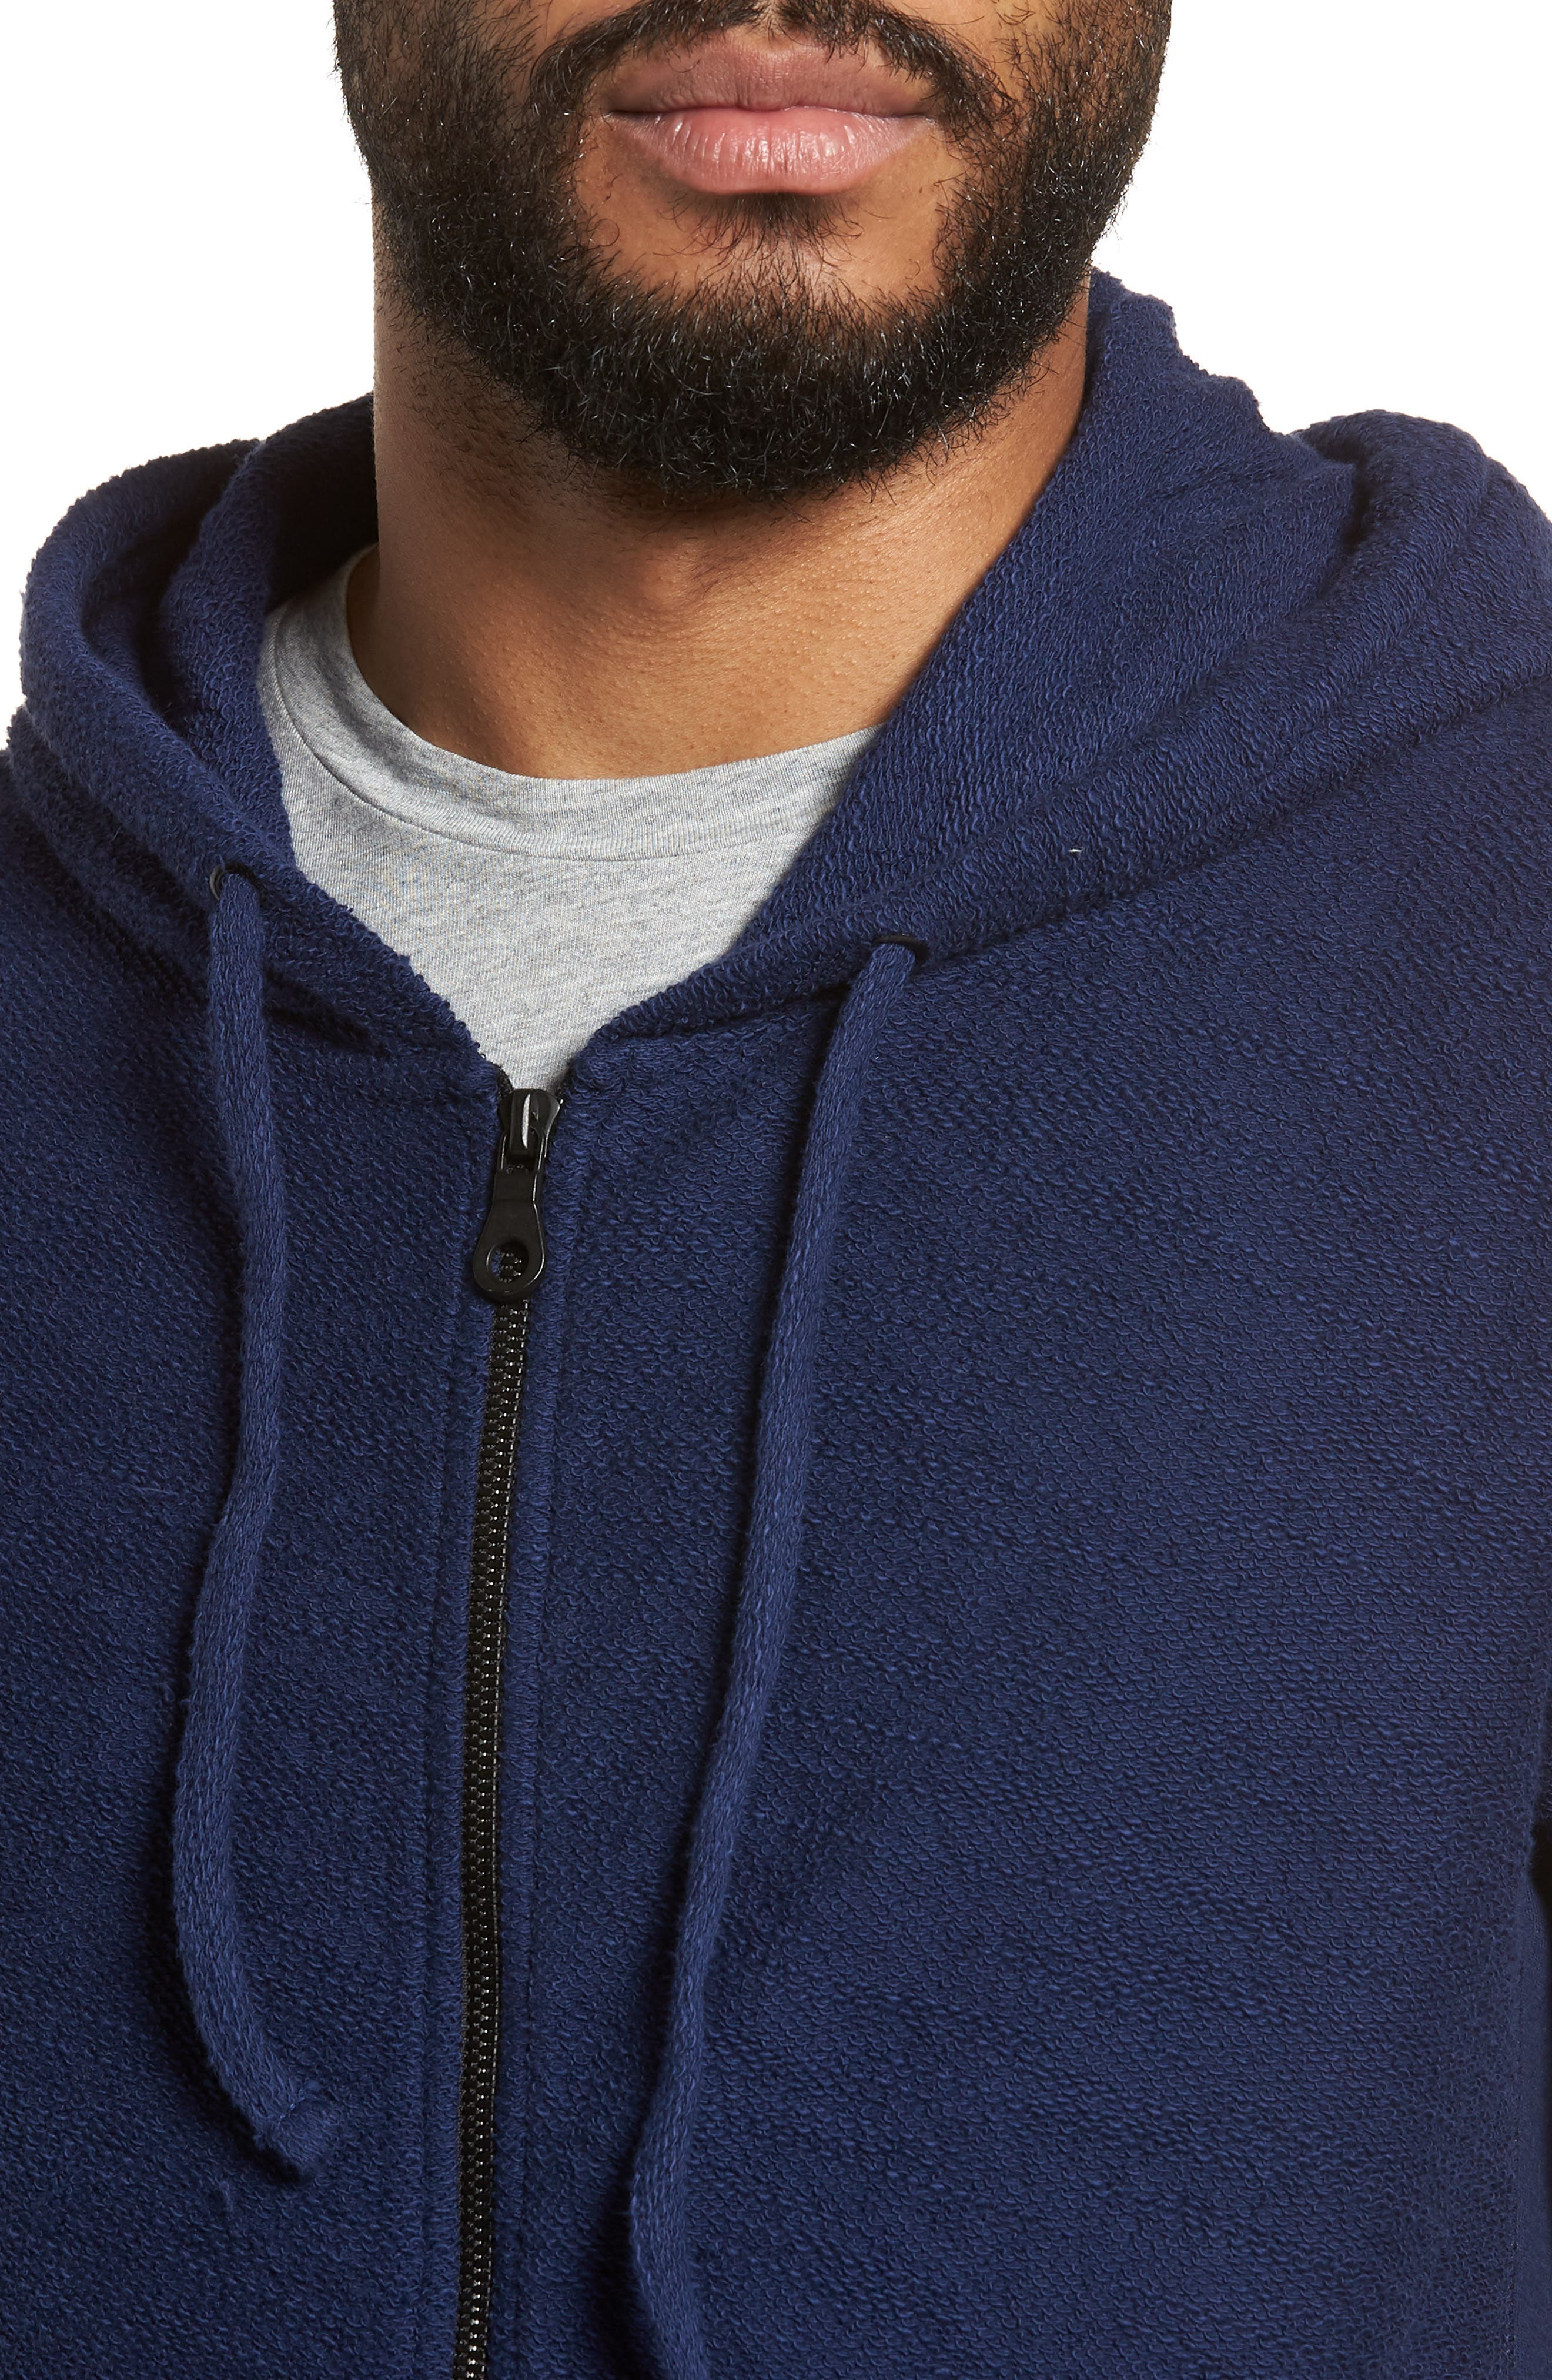 Terrycloth Cotton Blend Zip Hoodie,                             Alternate thumbnail 12, color,